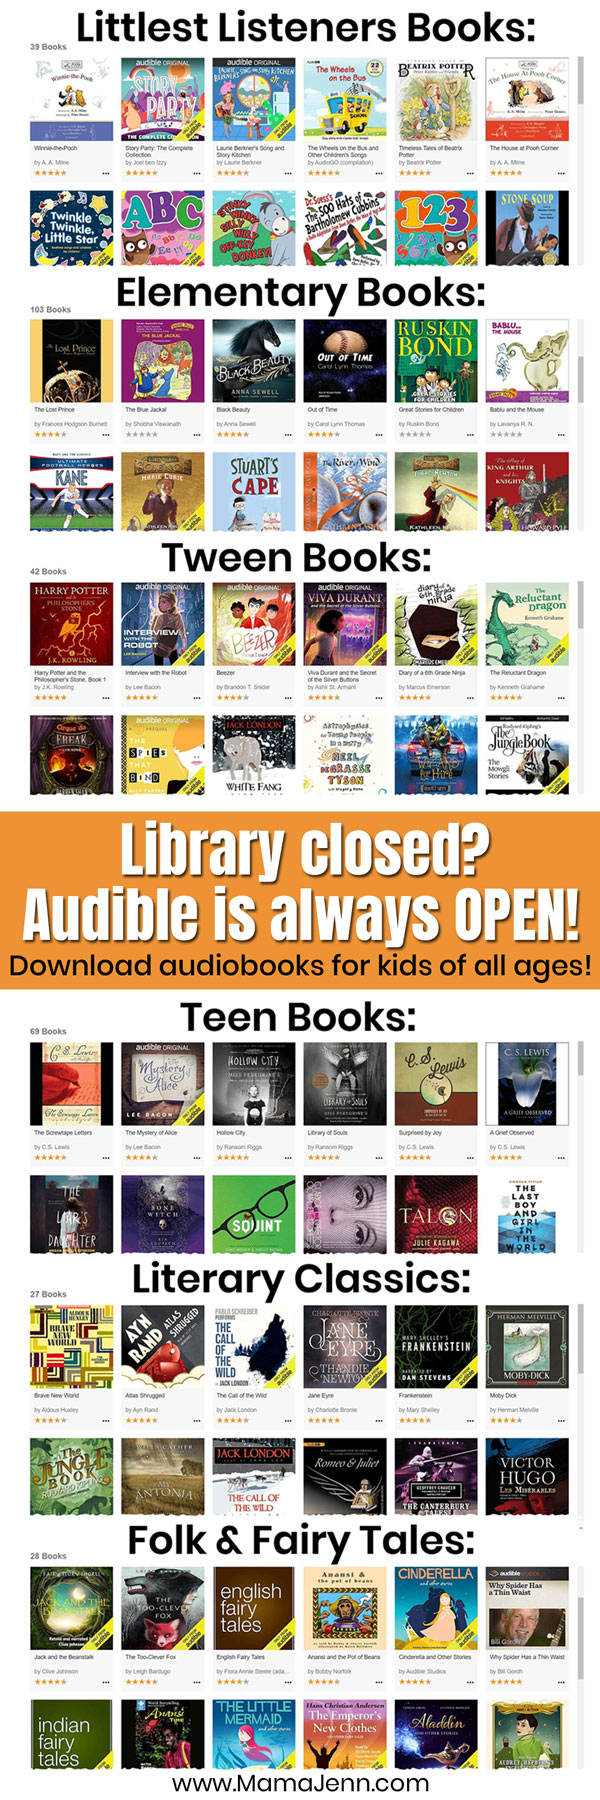 audiobooks for kids with text overlap Library closed? Audible is always OPEN! Download audio books for kids of all ages.